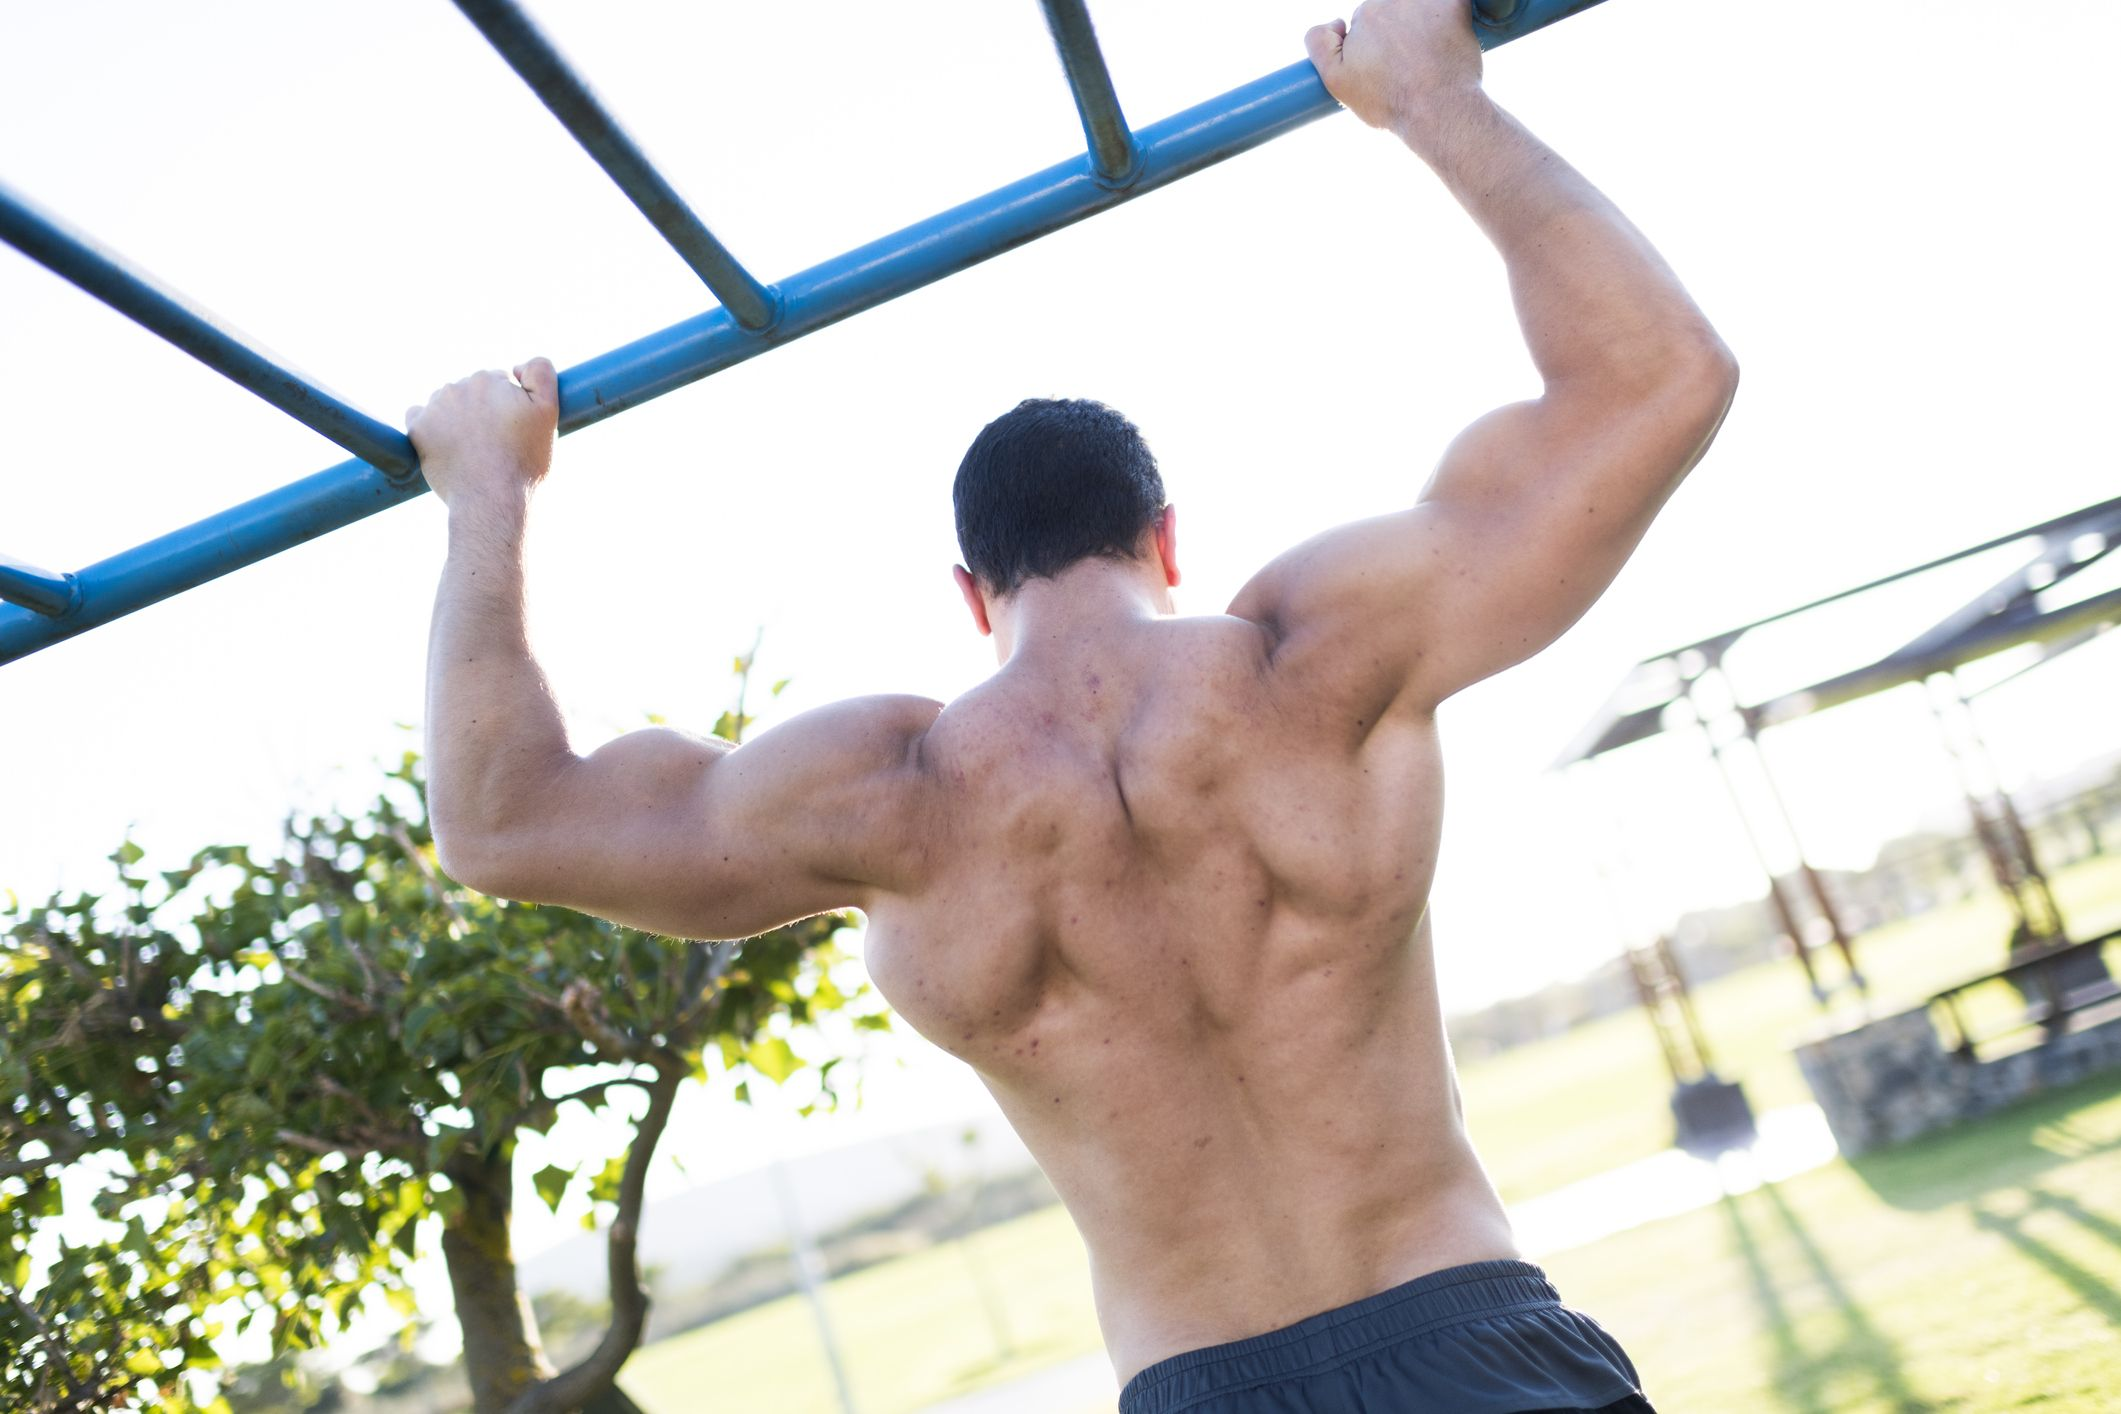 The Best Back Workouts and Exercises to Build Muscle at Home